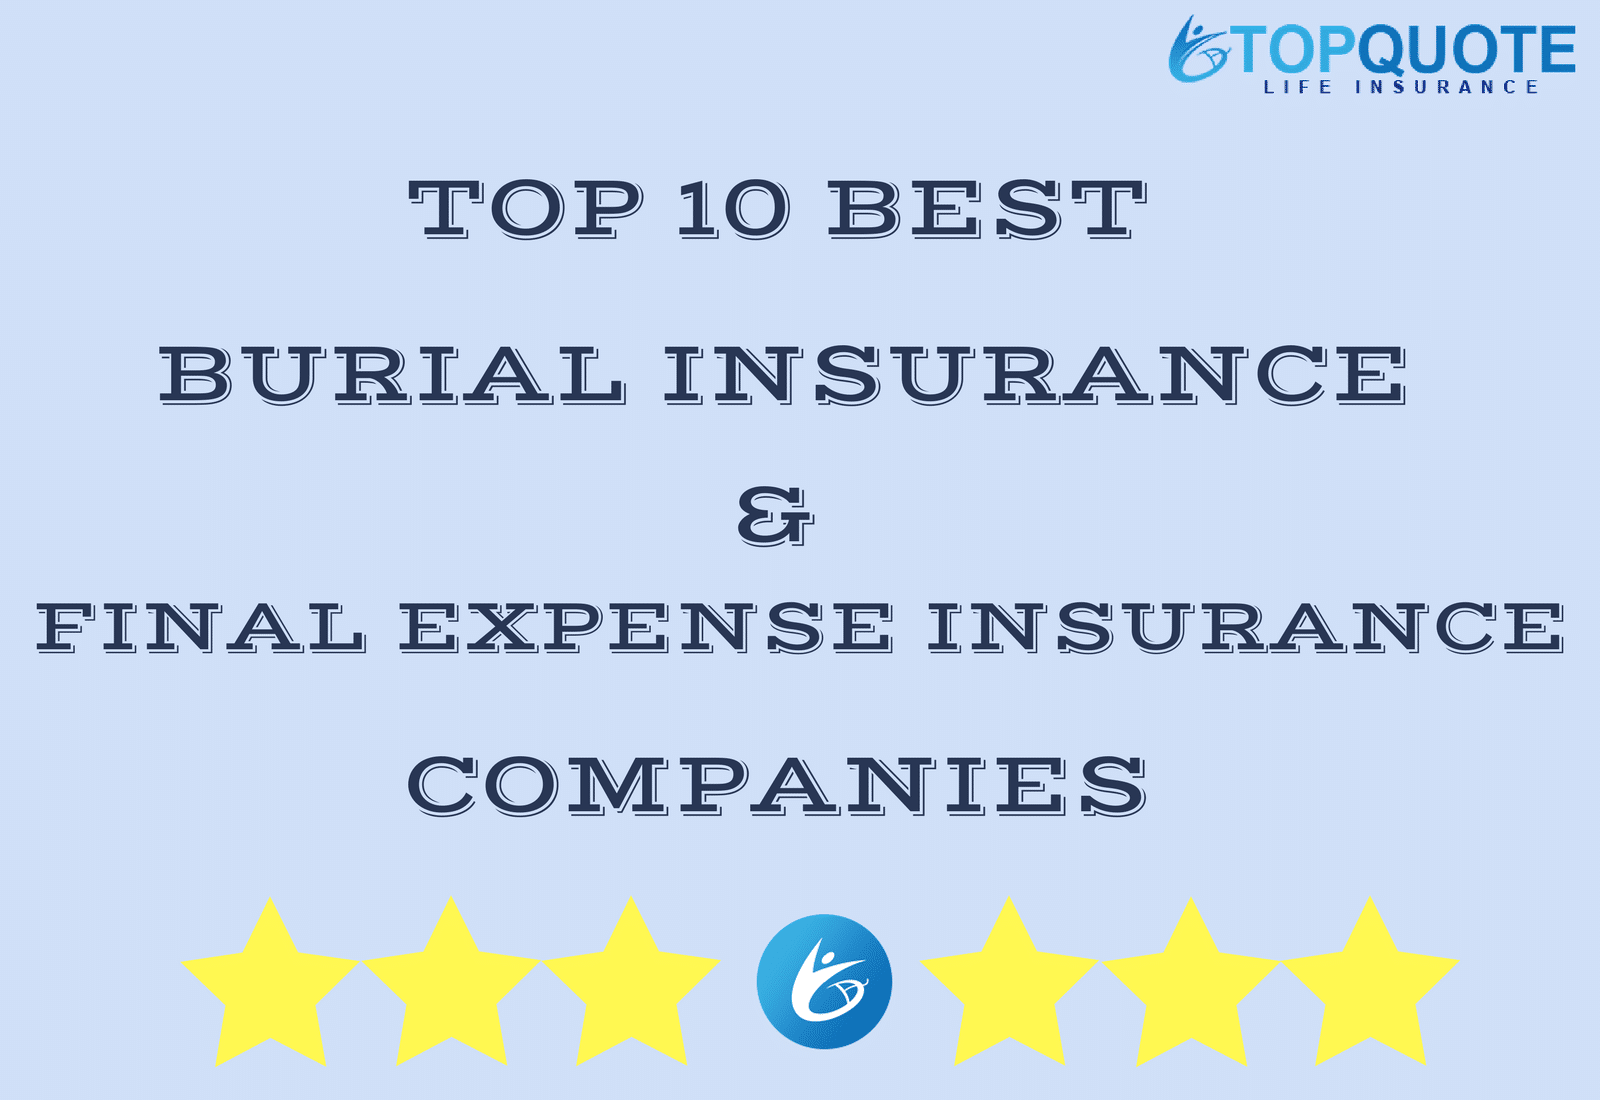 Life Ins Quote 2018 Top 10 Best Burial Insurance & Final Expense Insurance Companies